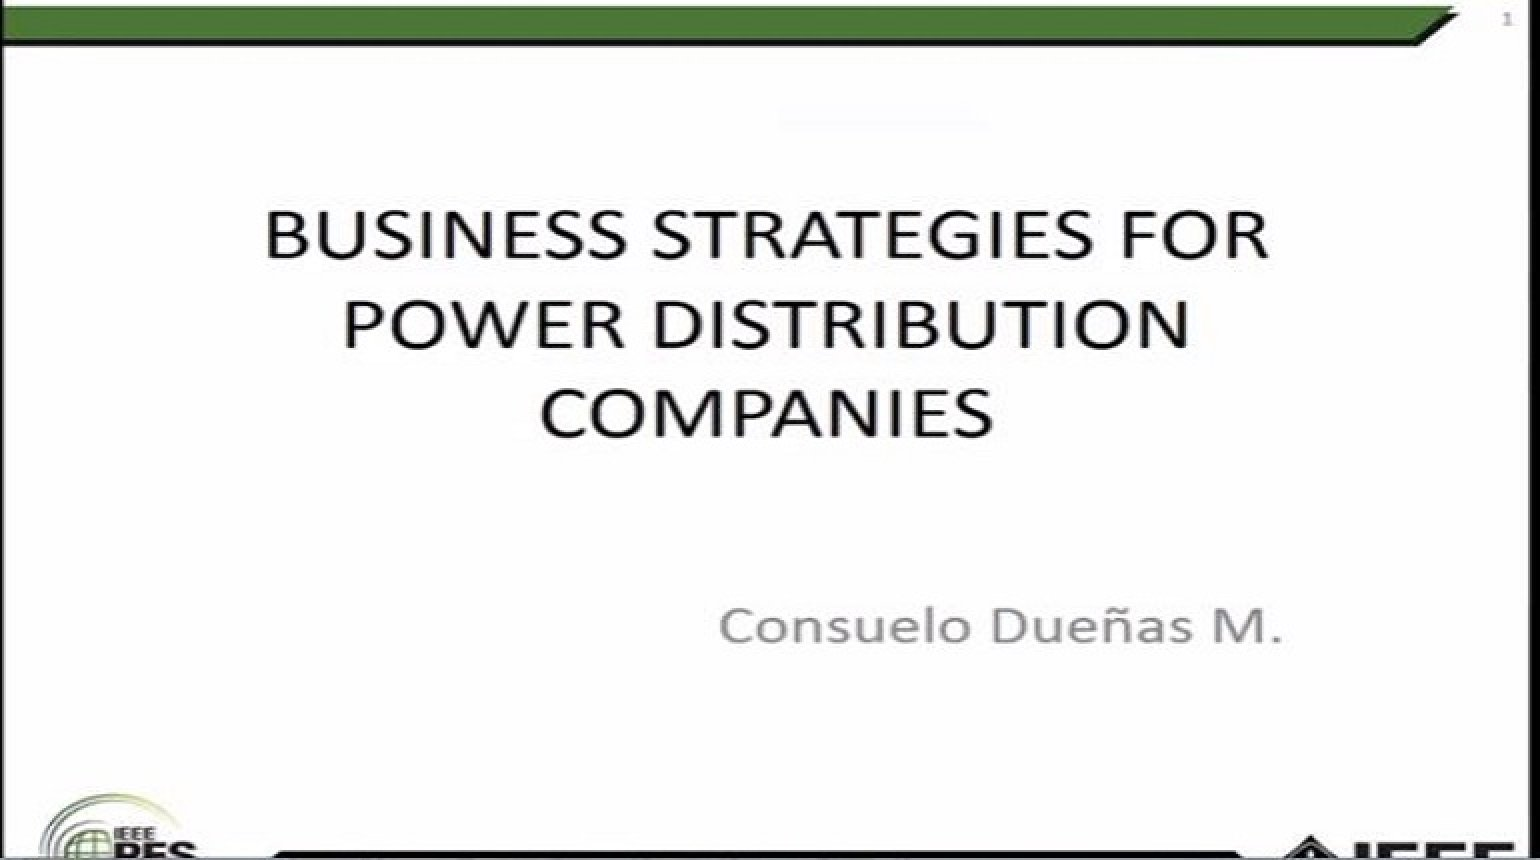 Business Strategies for Power Distribution Companies (Spanish version)